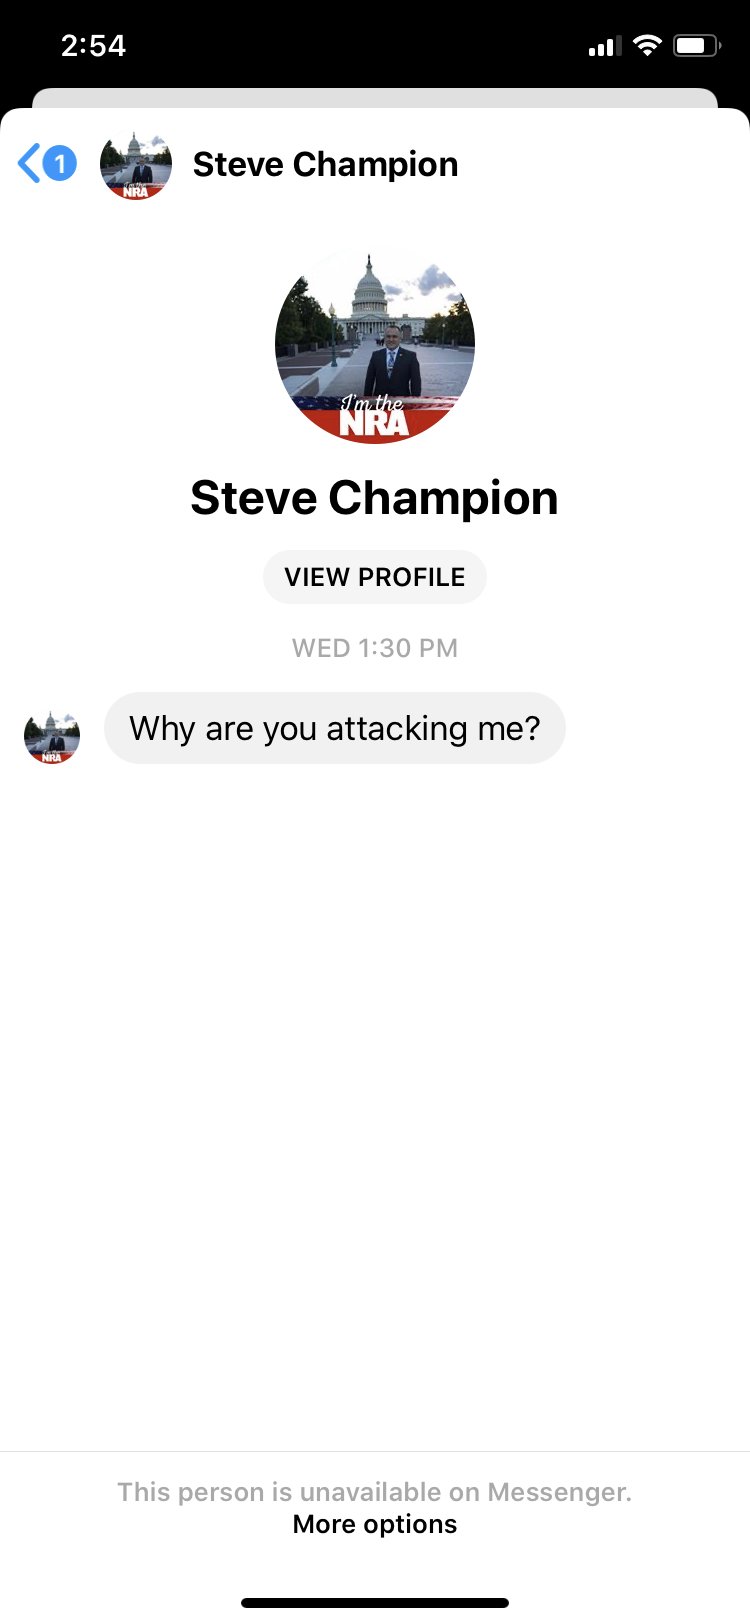 Text Message from Steve Champion